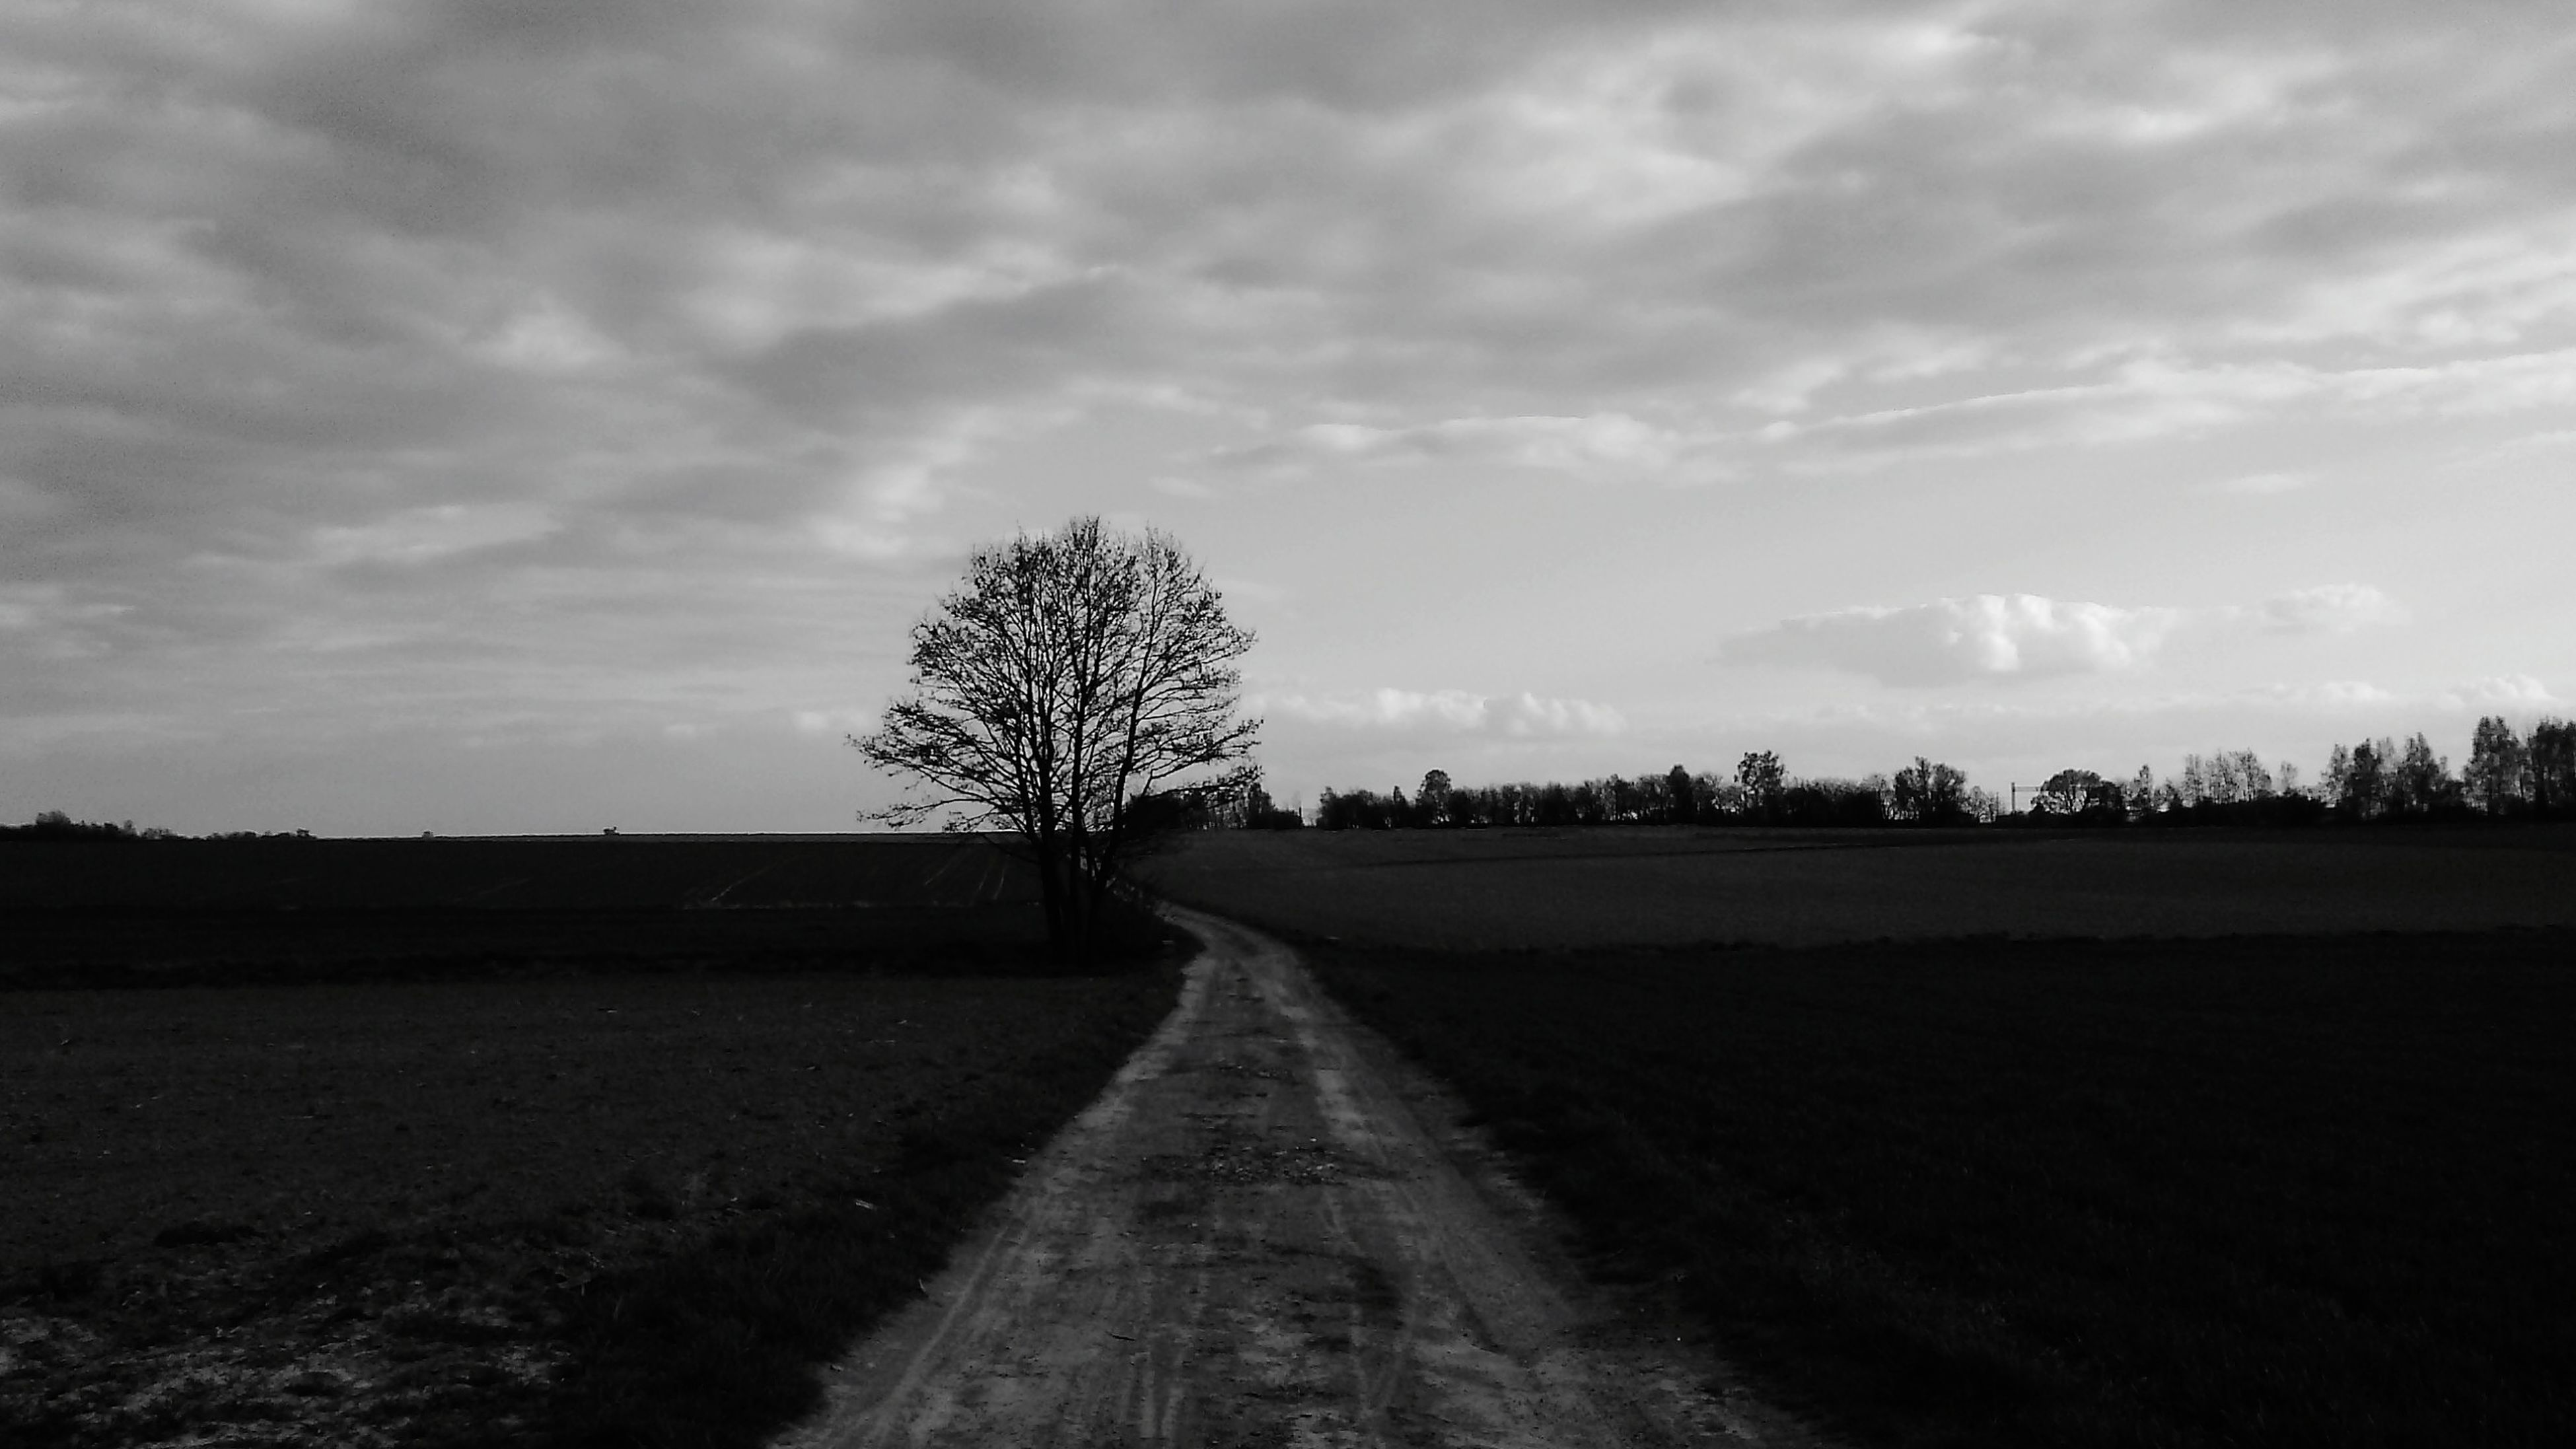 the way forward, sky, diminishing perspective, landscape, tranquility, tranquil scene, vanishing point, cloud - sky, tree, road, field, dirt road, nature, country road, cloud, scenics, cloudy, rural scene, beauty in nature, empty